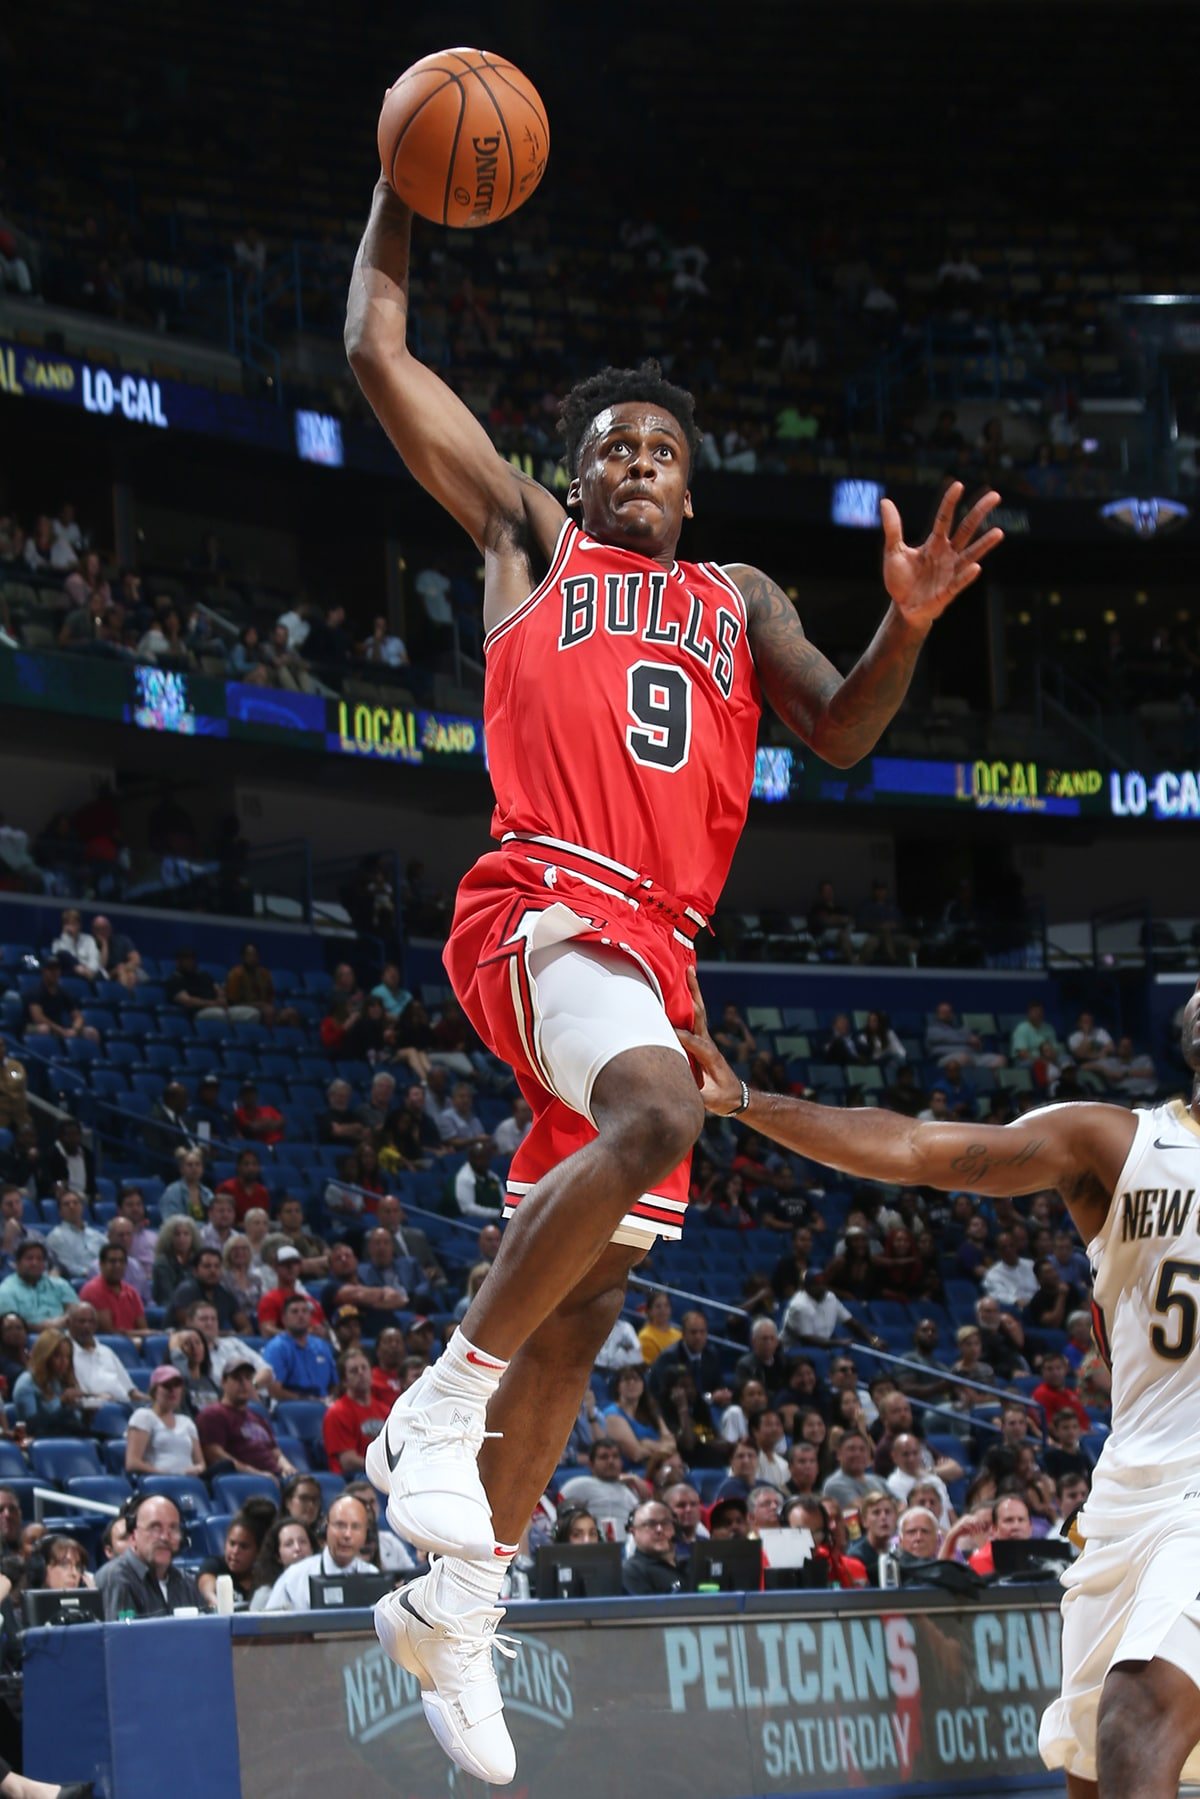 Antonio Blakeney #9 of the Chicago Bulls shoots the ball during a preseason game against the New Orleans Pelicans on October 3, 2017 at the Smoothie King Center in New Orleans, Louisiana.